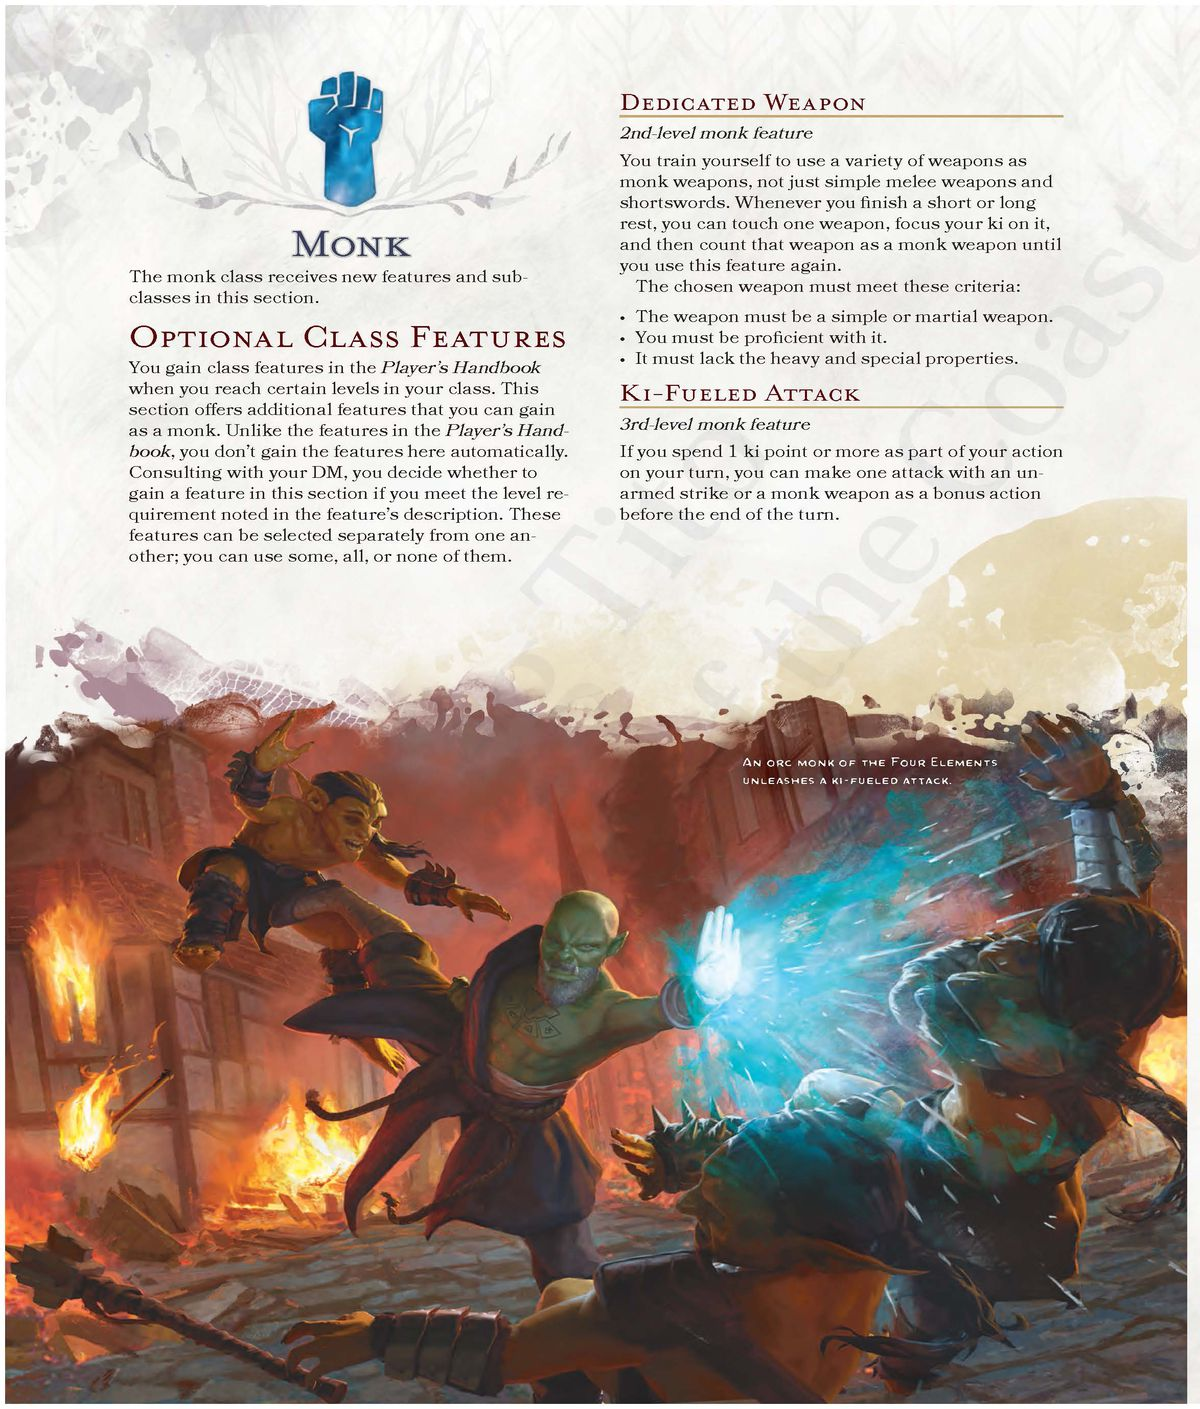 Page 48 from Tasha's Cauldron of Everything includes new features of the monk class.